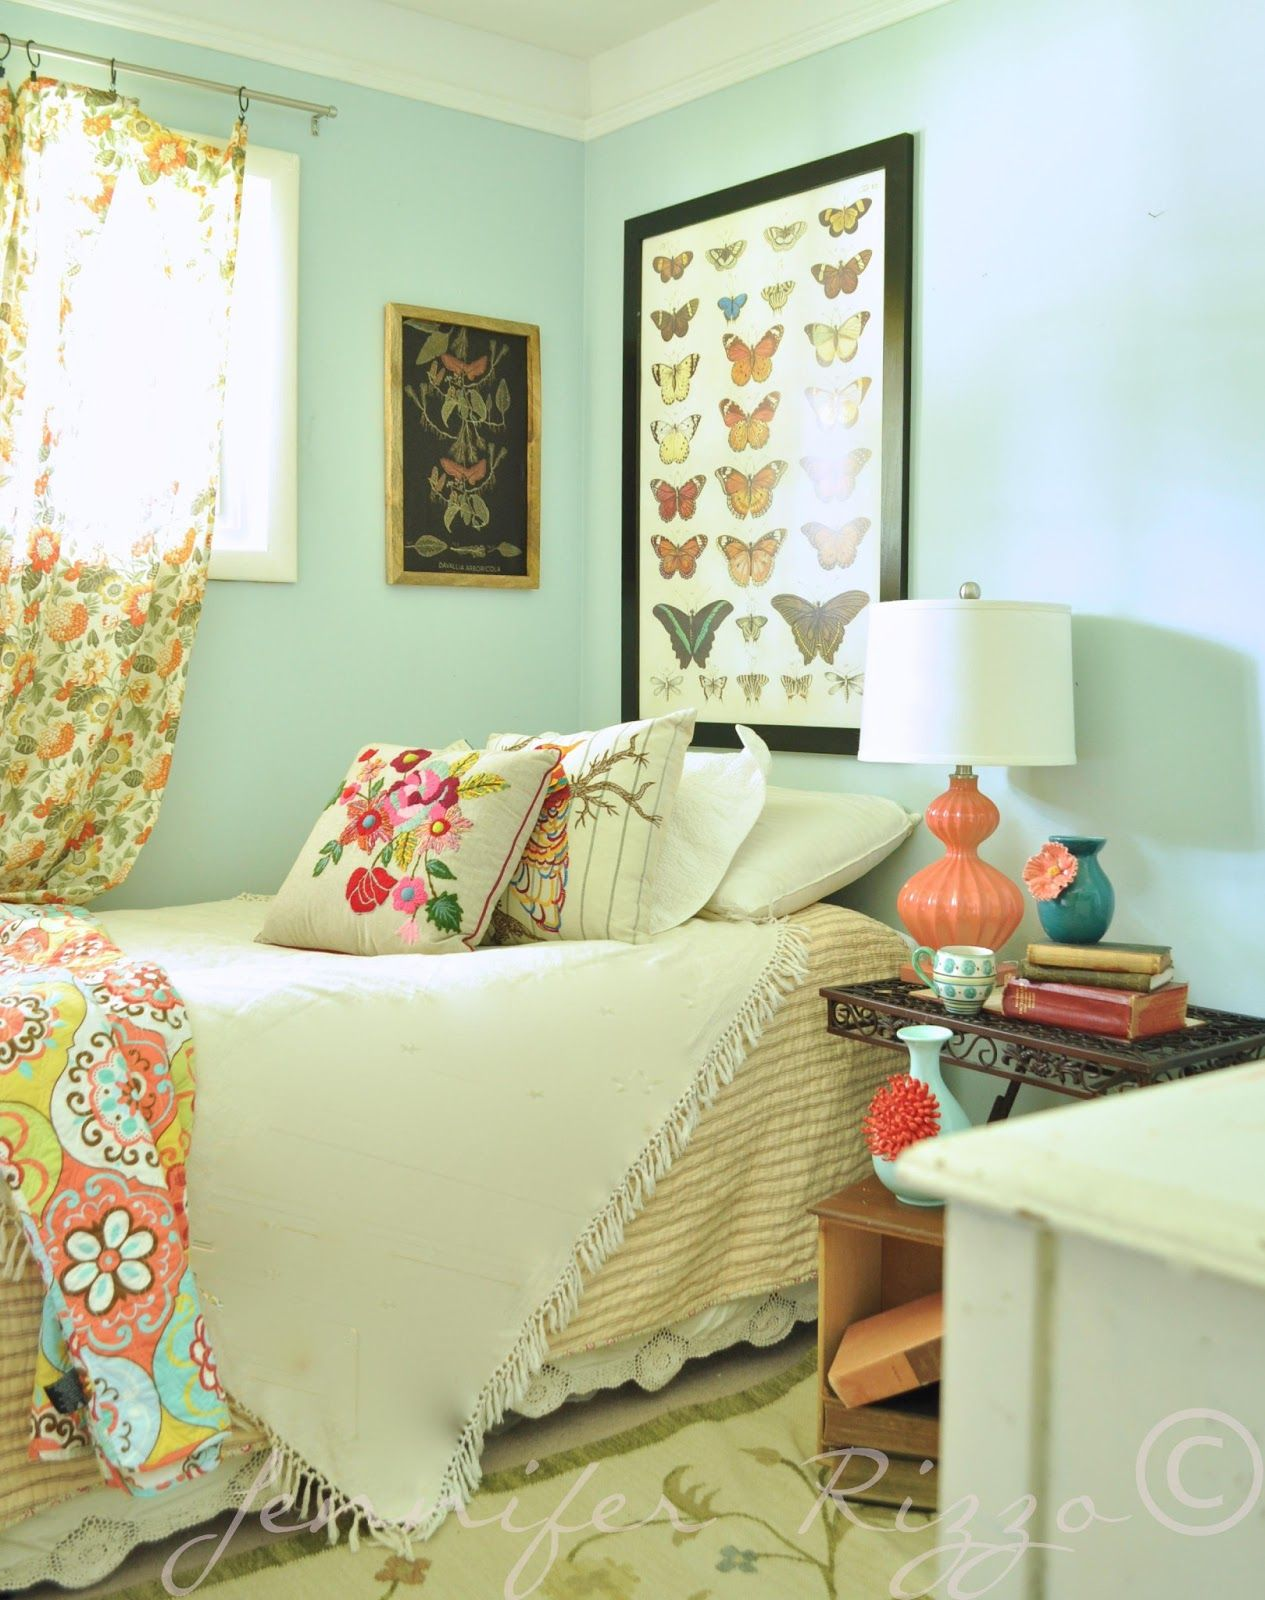 A Modern Bohemian room.One Room, Three different ways